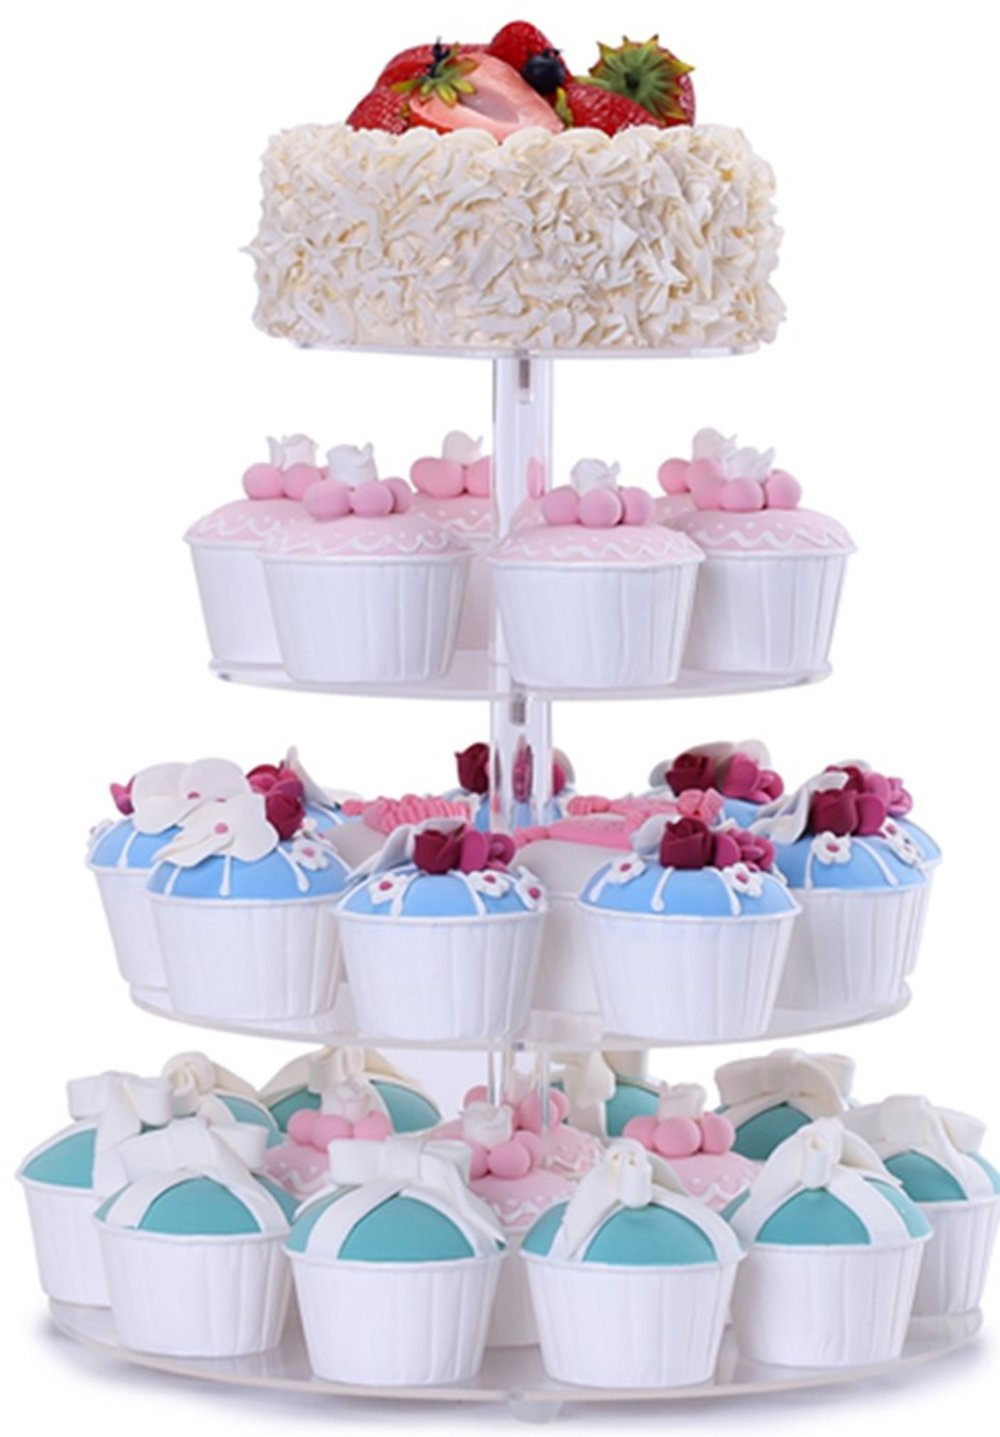 cheap 3 tiered cake stands find 3 tiered cake stands deals on line